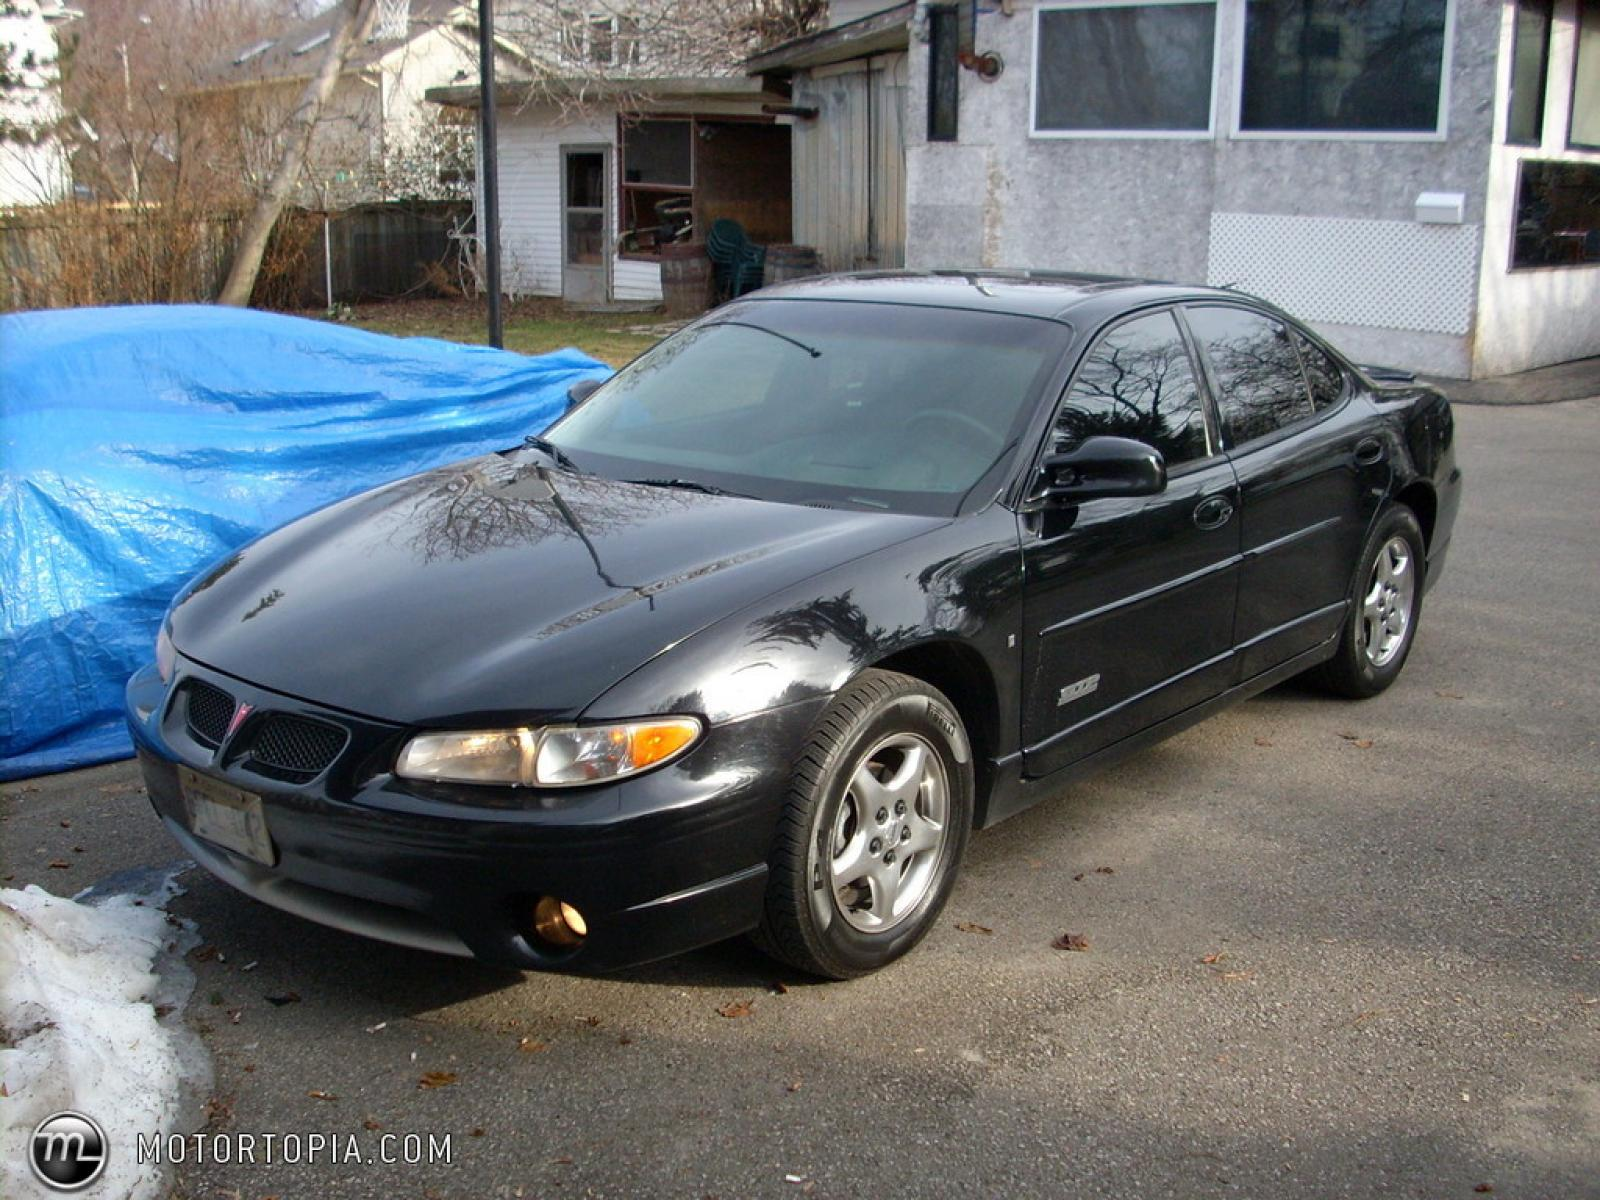 1998 pontiac grand prix information and photos zombiedrive. Black Bedroom Furniture Sets. Home Design Ideas